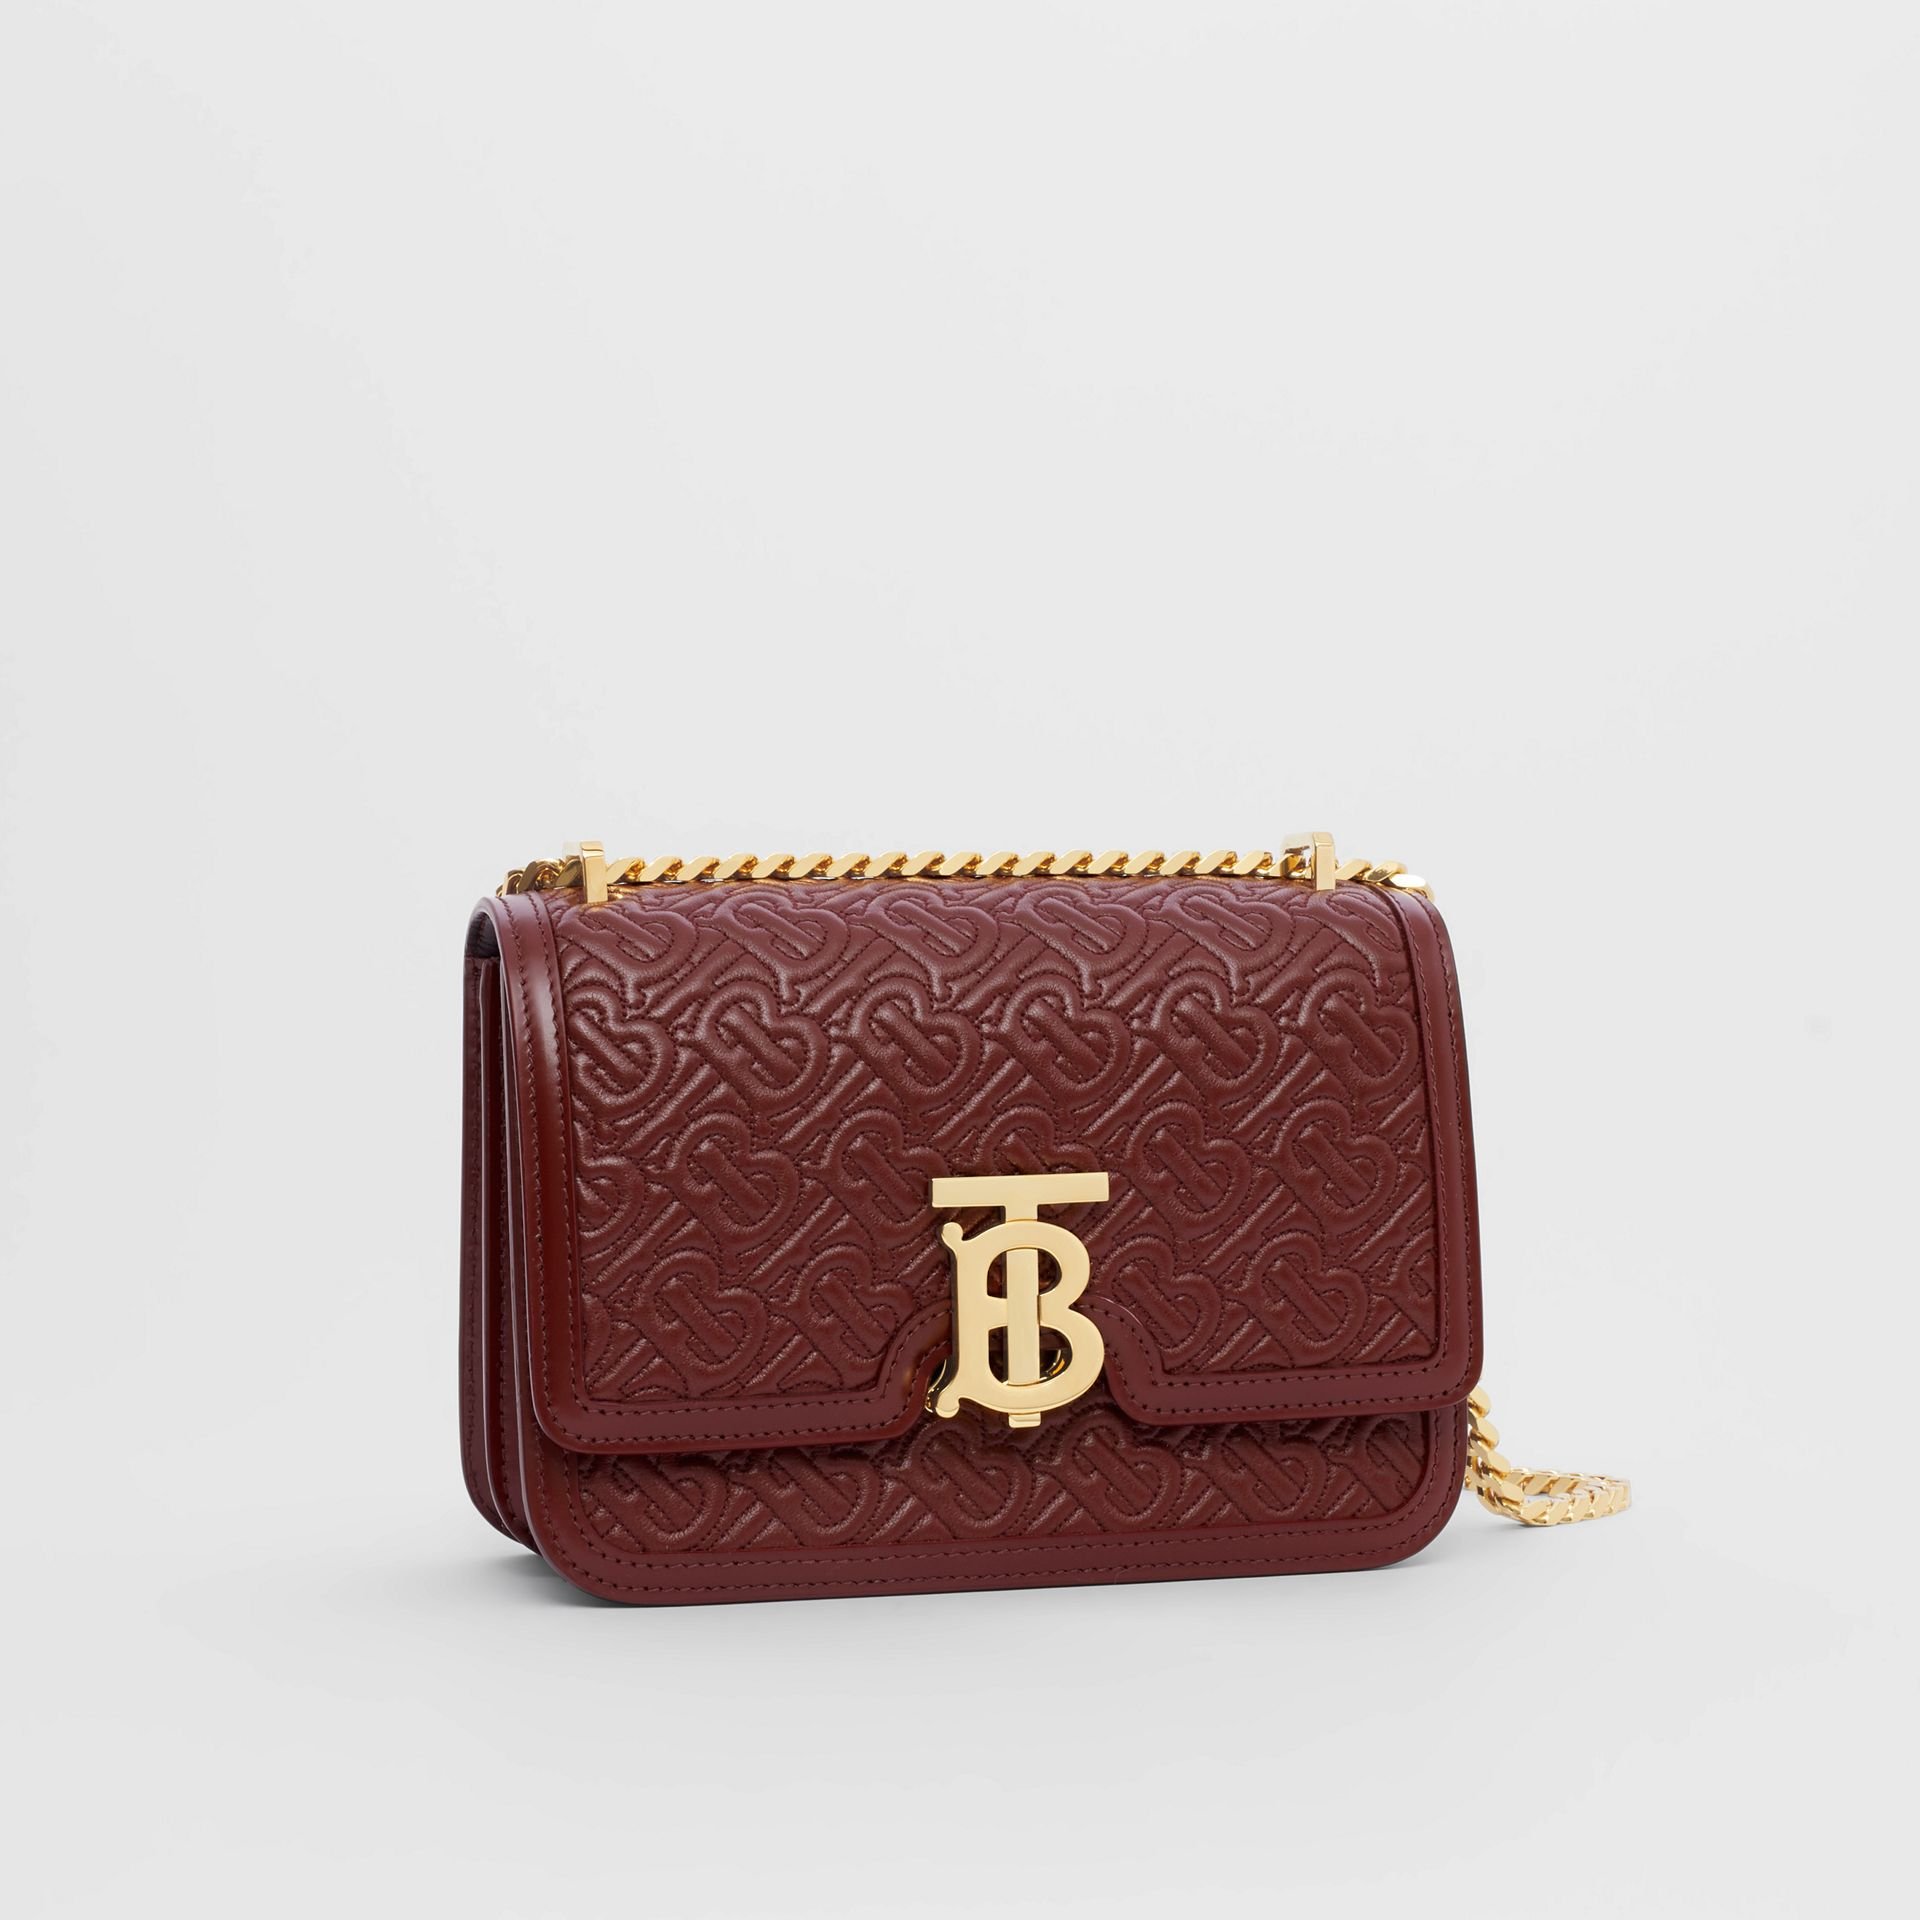 Small Quilted Monogram Lambskin TB Bag in Oxblood - Women | Burberry United Kingdom - gallery image 4